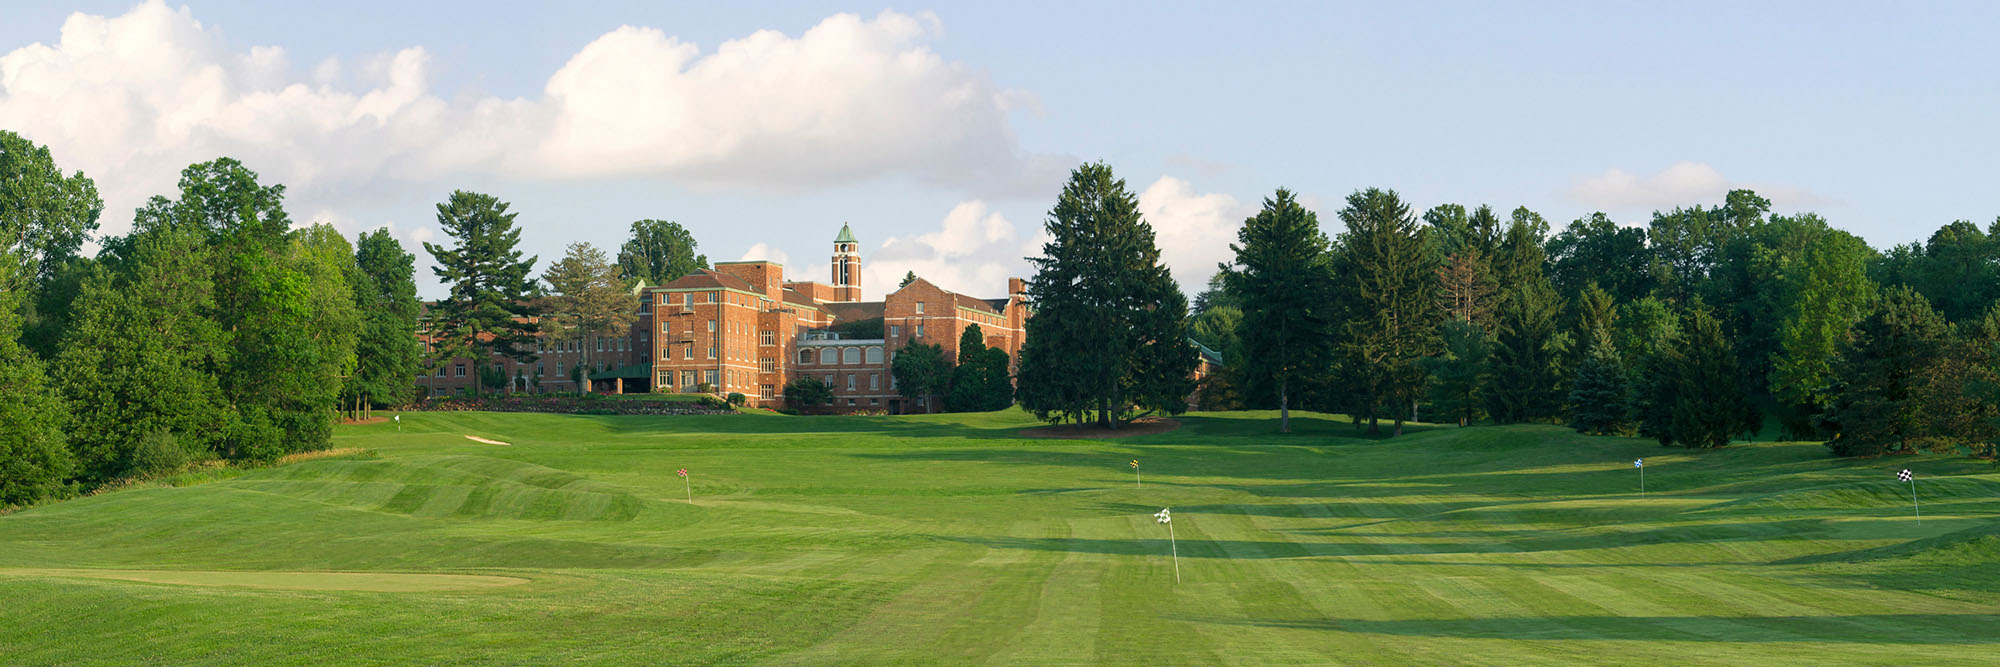 Golf Course Image - Glenmoor Country Club House (back)